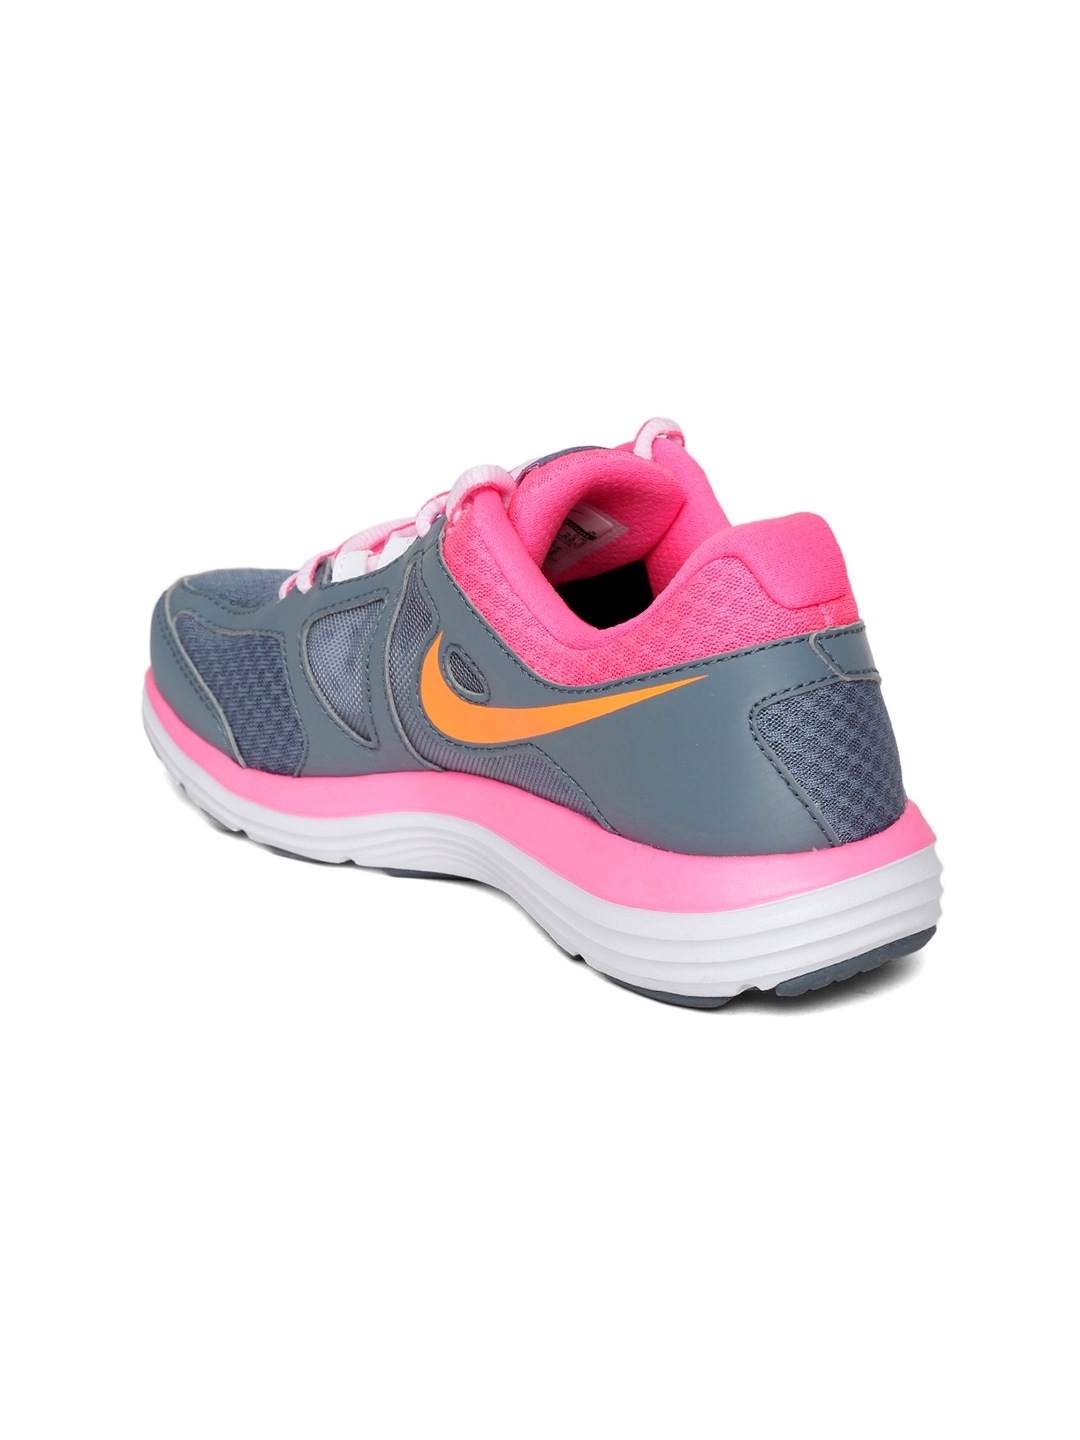 myntra nike women grey dual fusion lite 2 msl sports shoes 672697 buy myntra nike sports shoes. Black Bedroom Furniture Sets. Home Design Ideas